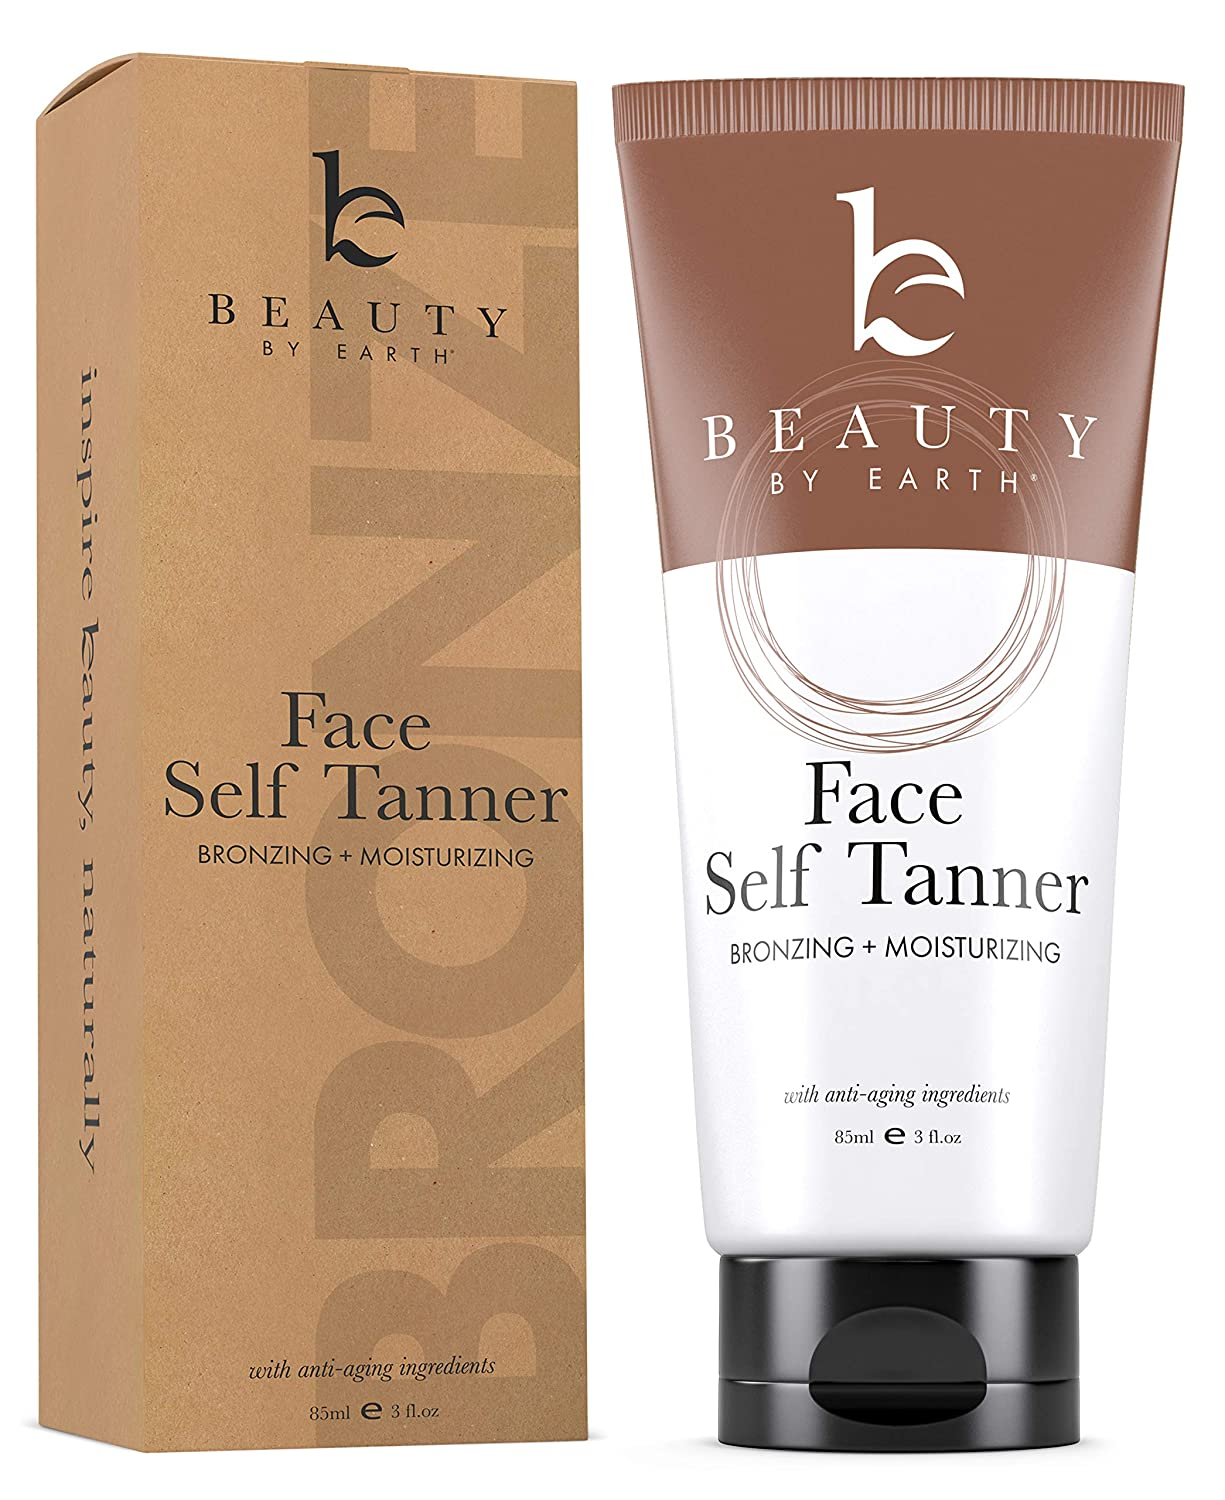 Self Tanner for Face with Organic & Natural Ingredients, Tanning Lotion, Sunless Tanning Lotion for Darker Bronzer Skin, Self Tanning Lotion - Self Tanners Best Sellers, Fake Tan (1 Pack)